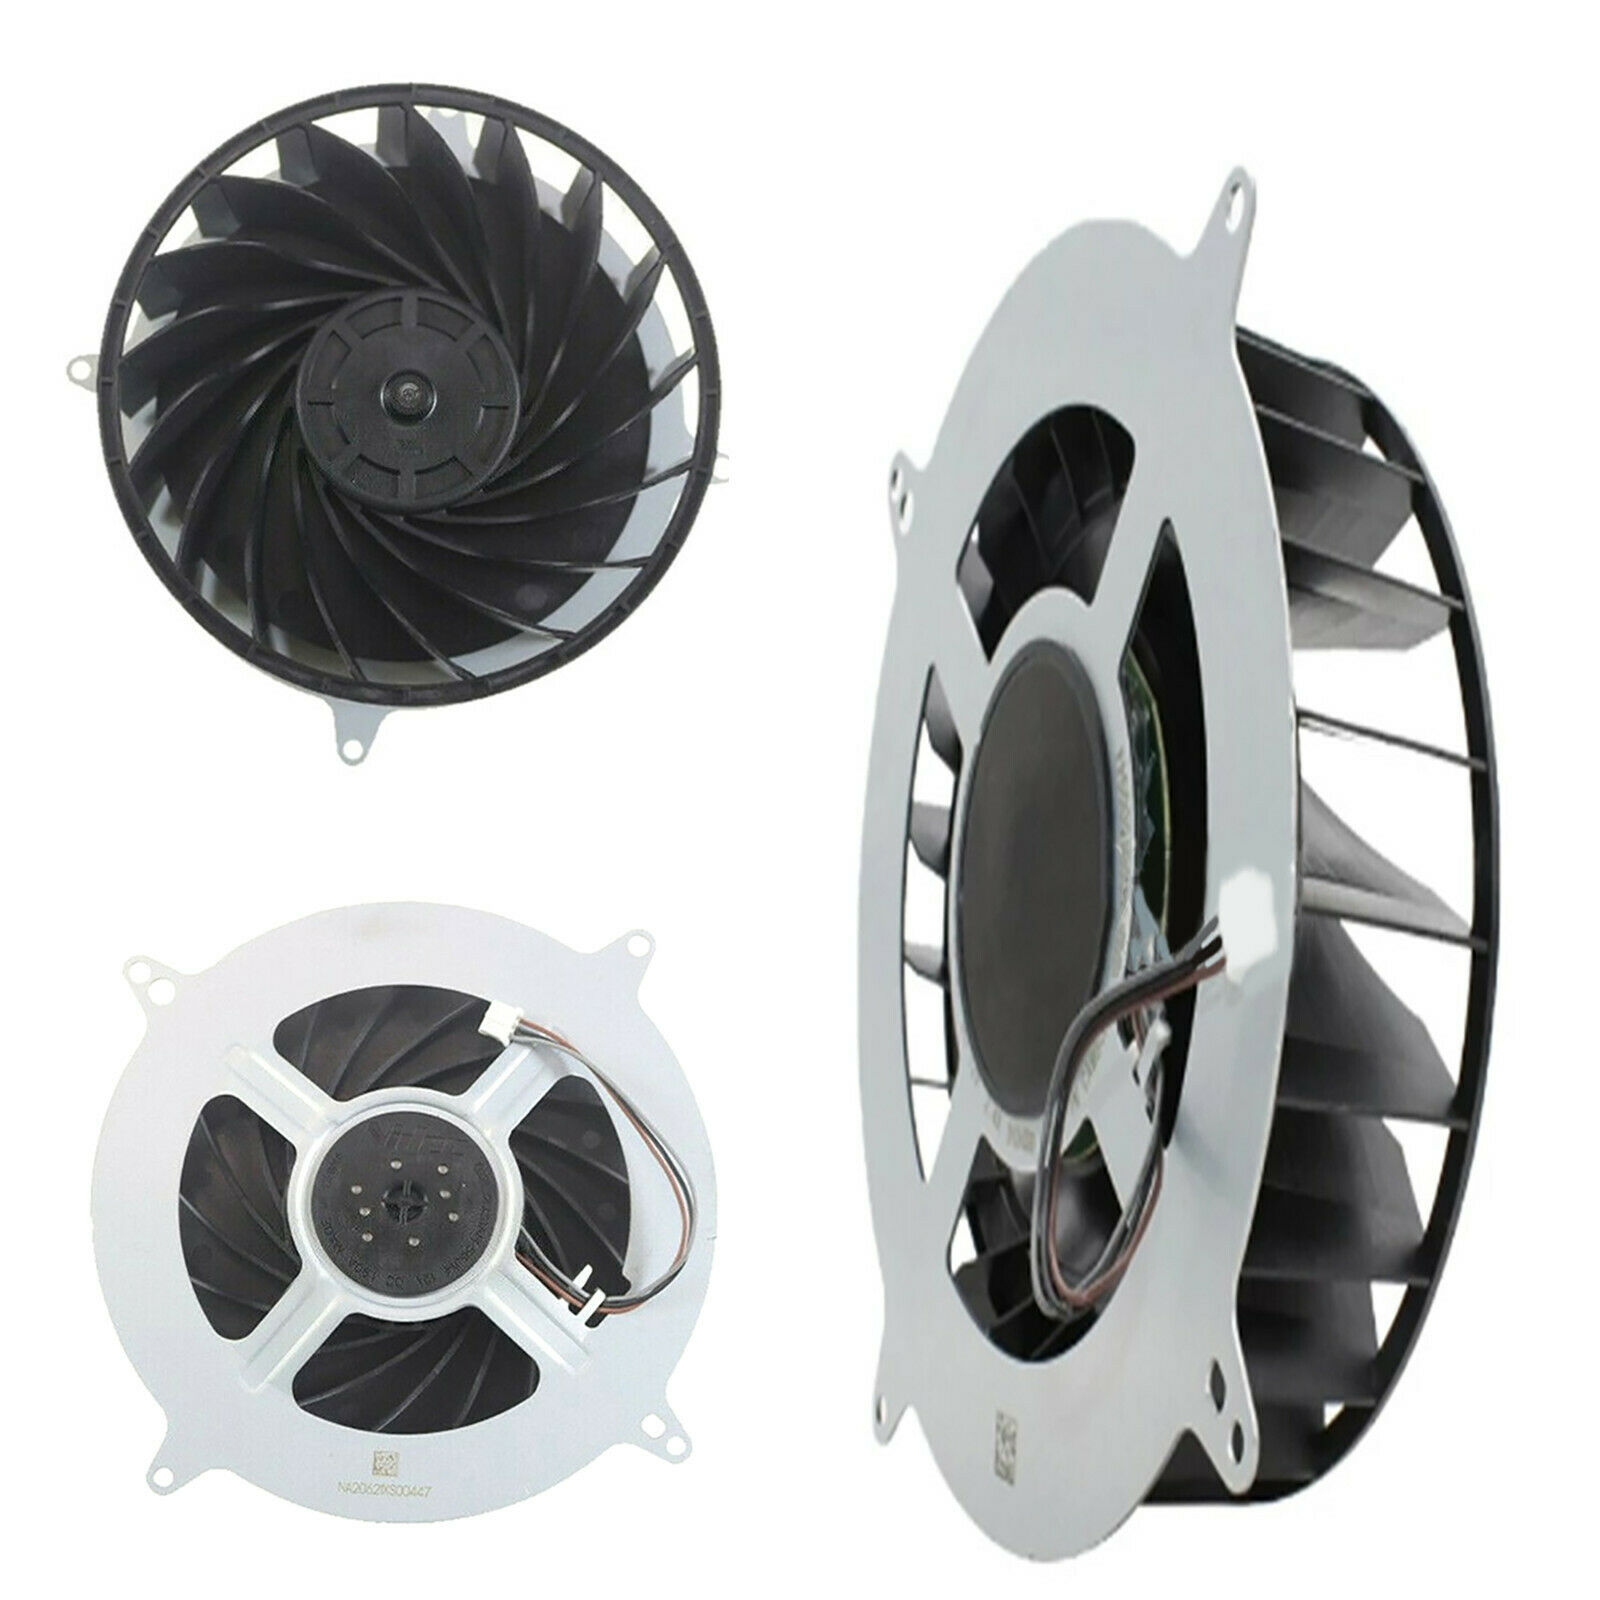 Cooling Fan 17 Blades Cooler Fan G12L12MS1AH-56J14 Fit for PS 5 Game Console